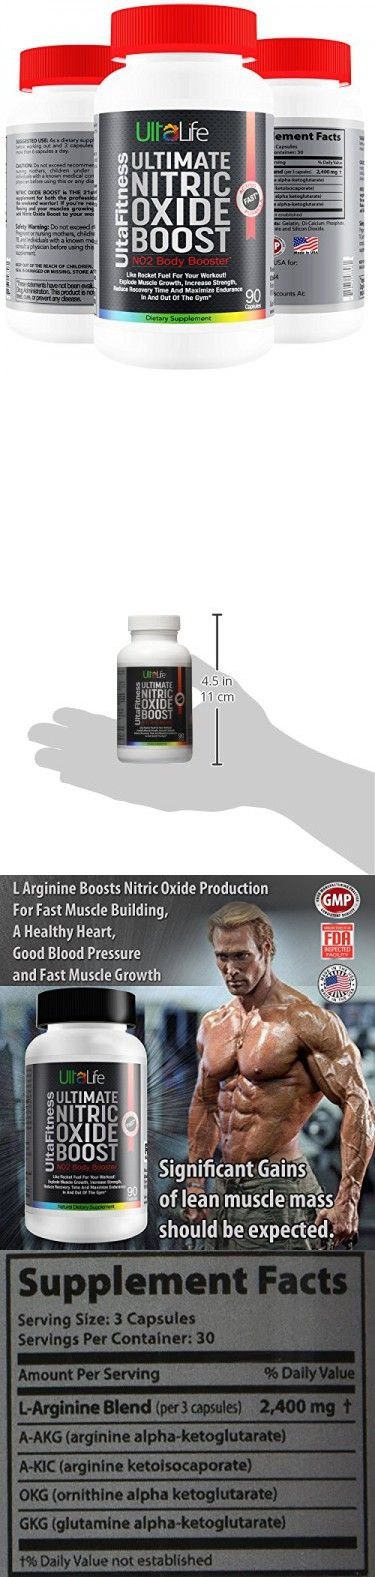 """#1 Nitric Oxide Booster -- Ultimate Nitric Oxide Supplements + L Arginine Are The Best Pre Workout Pills To Build Muscle Fast, Increase Strength, Reduce Recovery Time and Maximize Endurance In And Out Of The Gym! Experience """"The Power of The Pump"""" for You"""